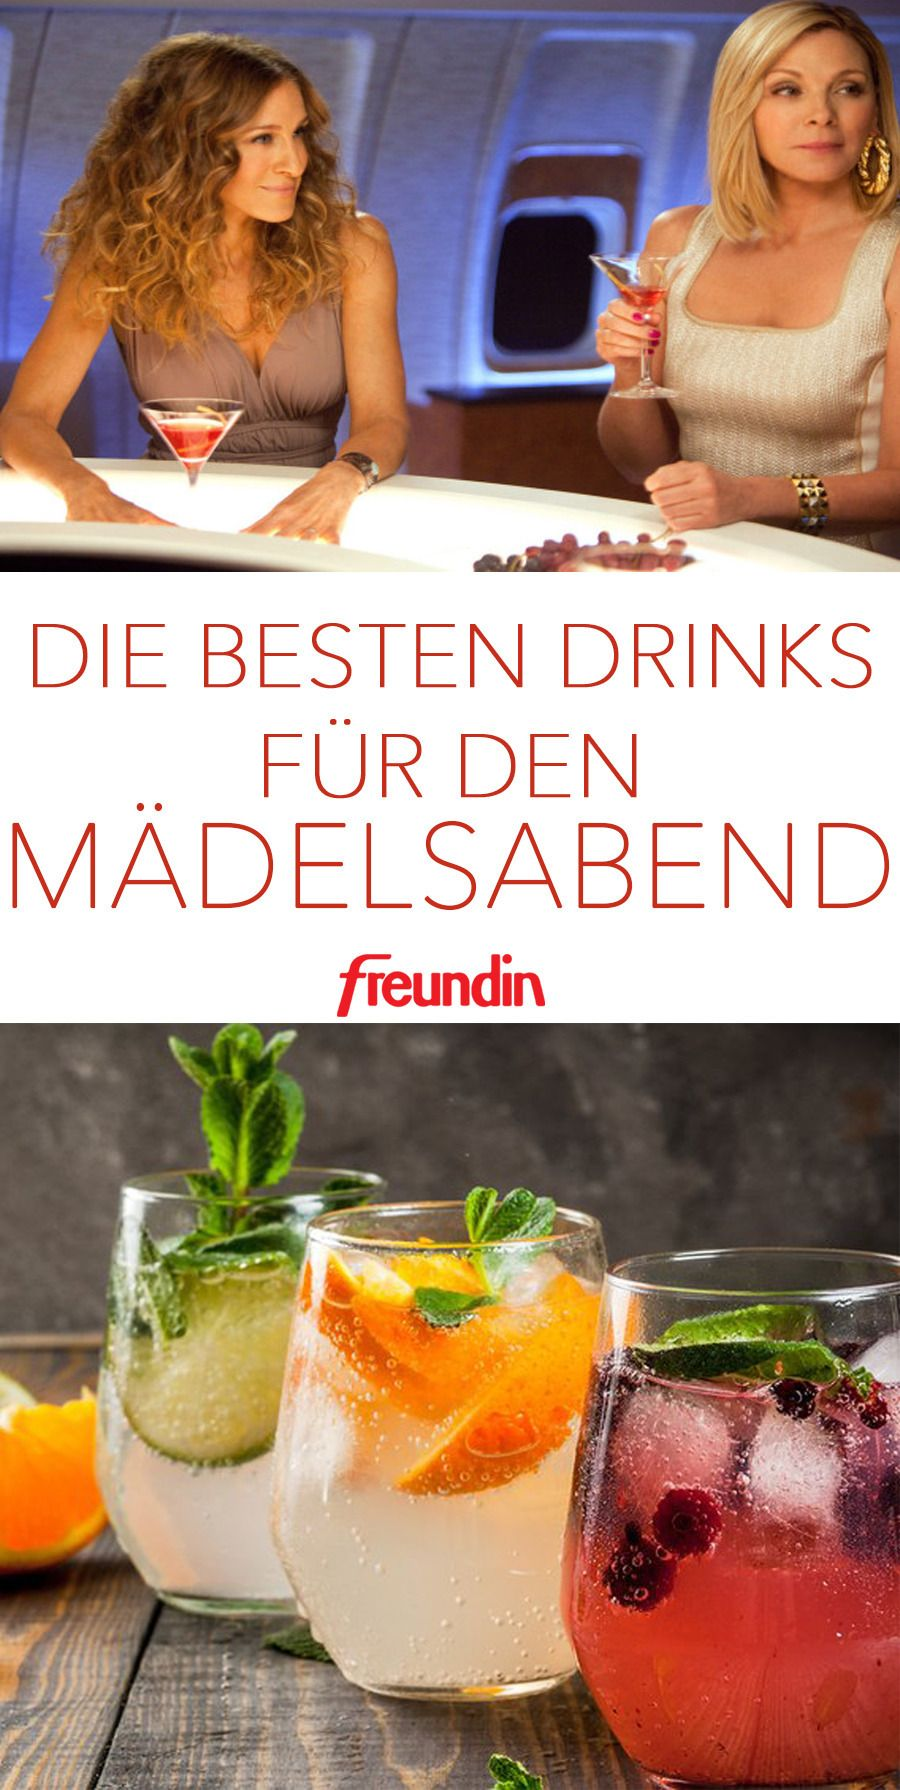 Photo of The best cocktails for girls' evening | freundin.de